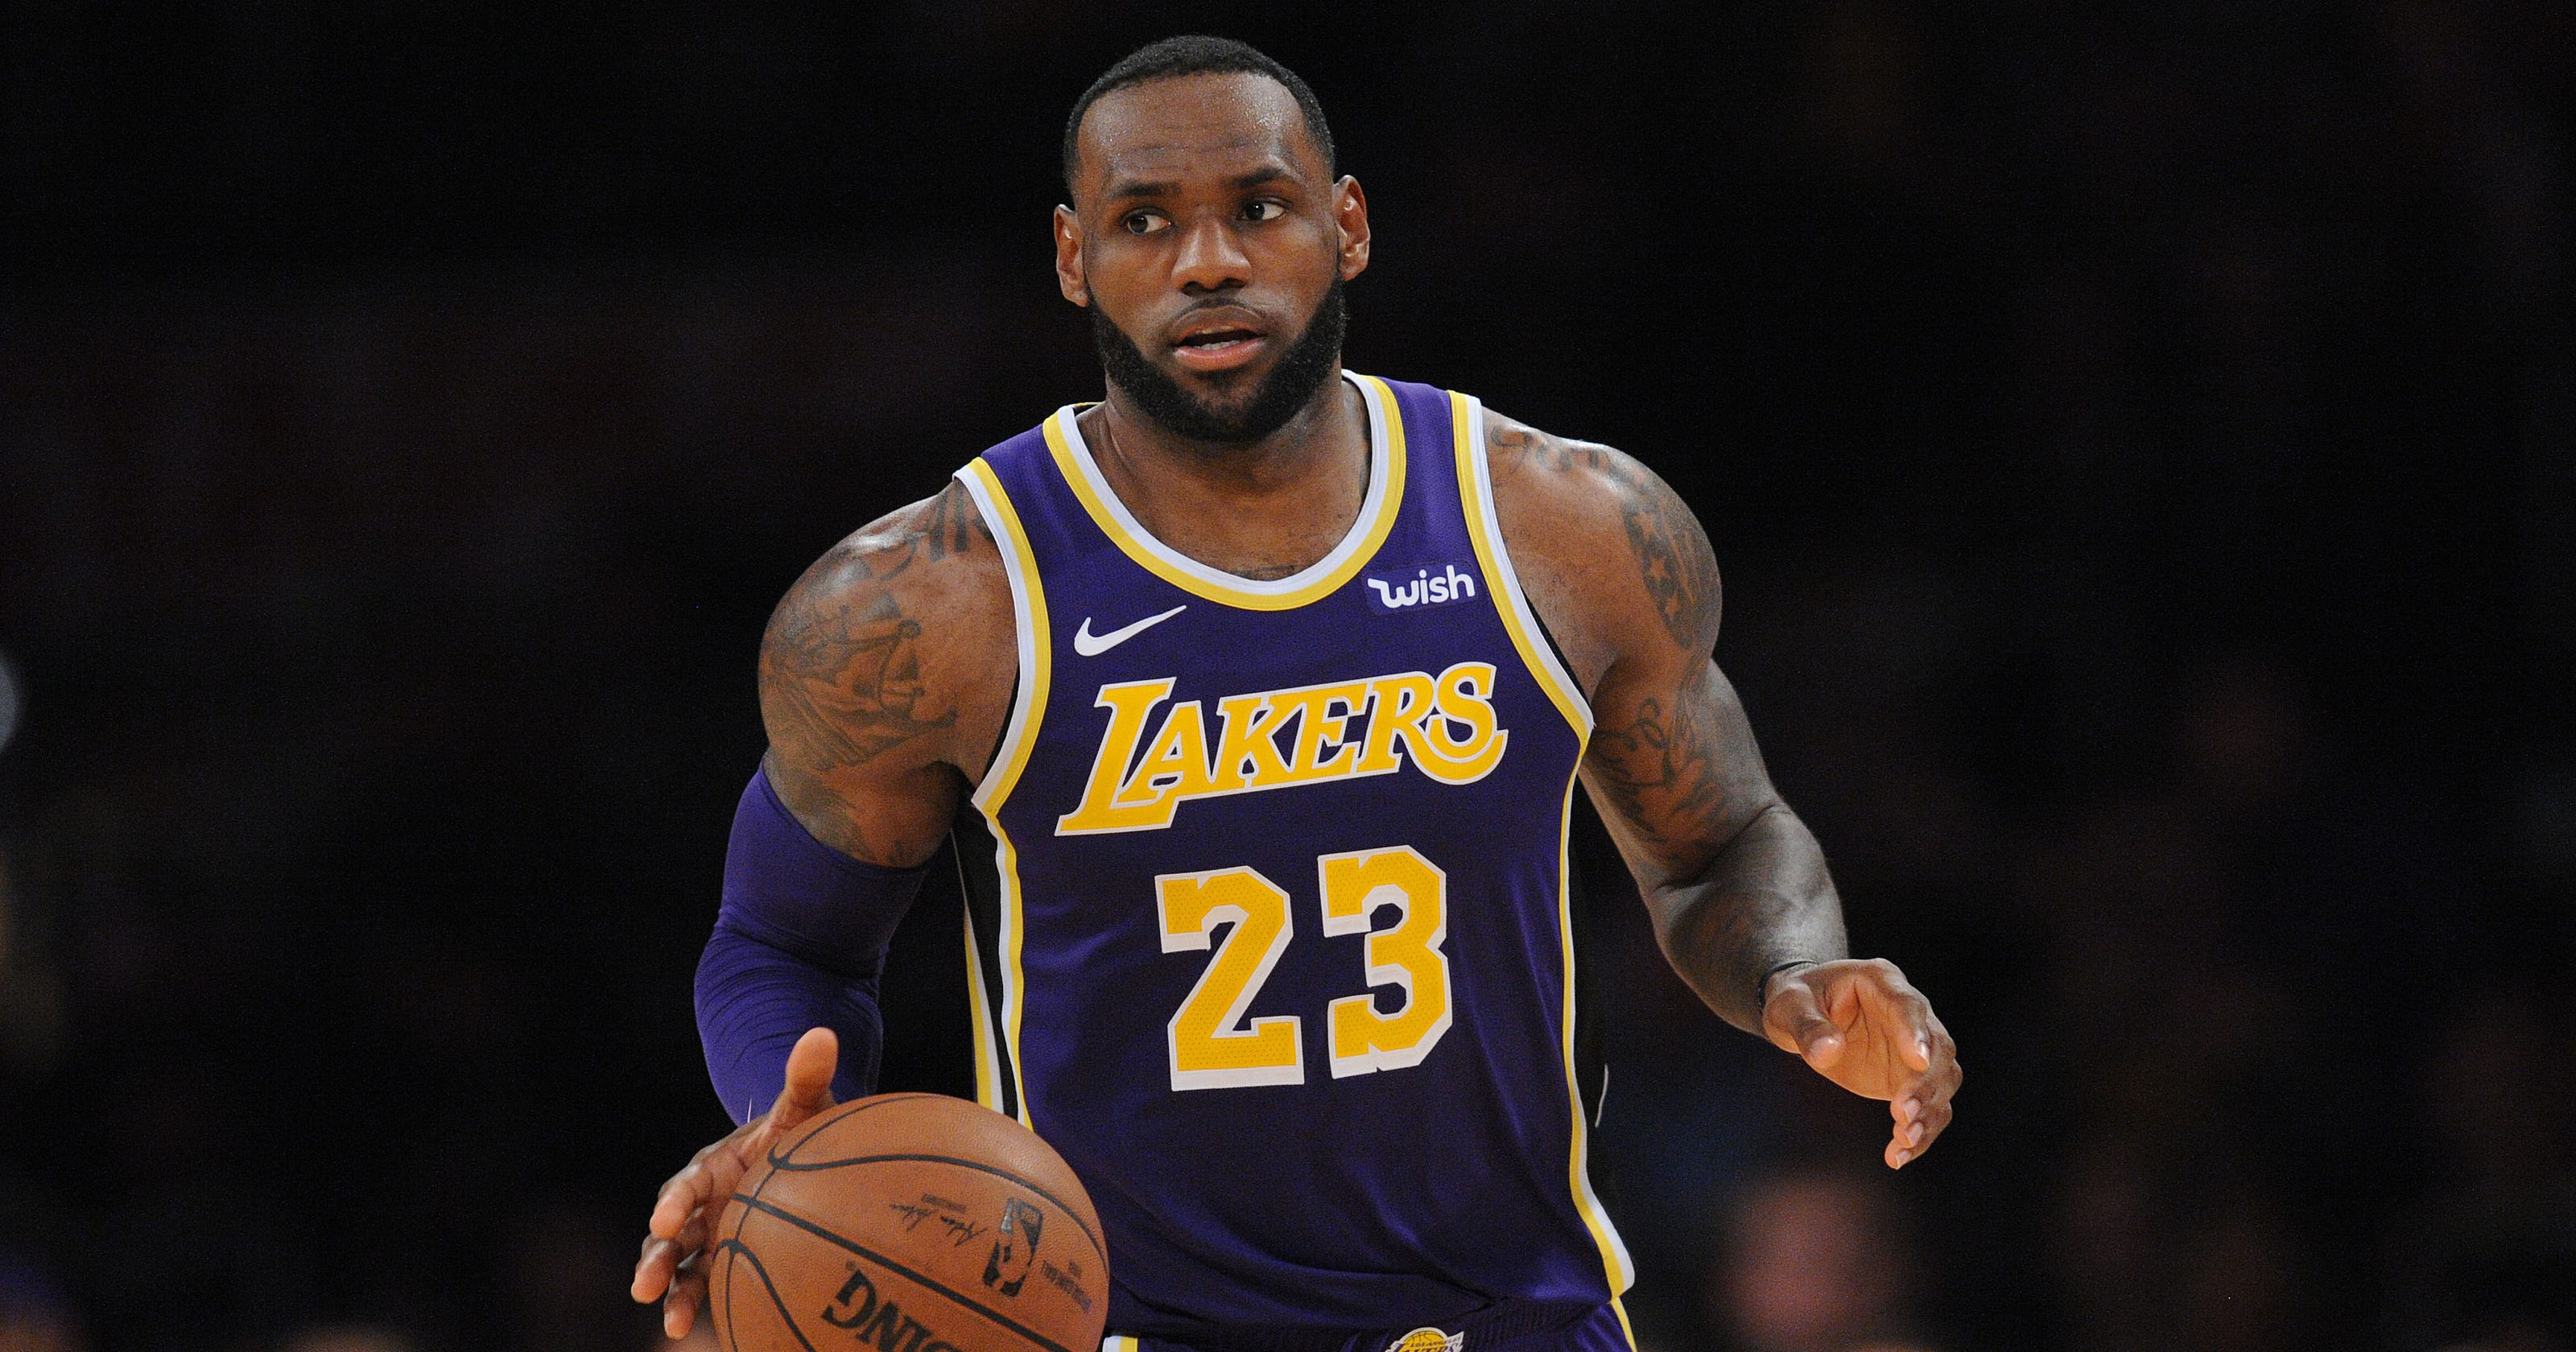 84a23ed6b7d1 LeBron James delivers emotional slam dunk about Michael Jordan   I wanted  to be like MJ